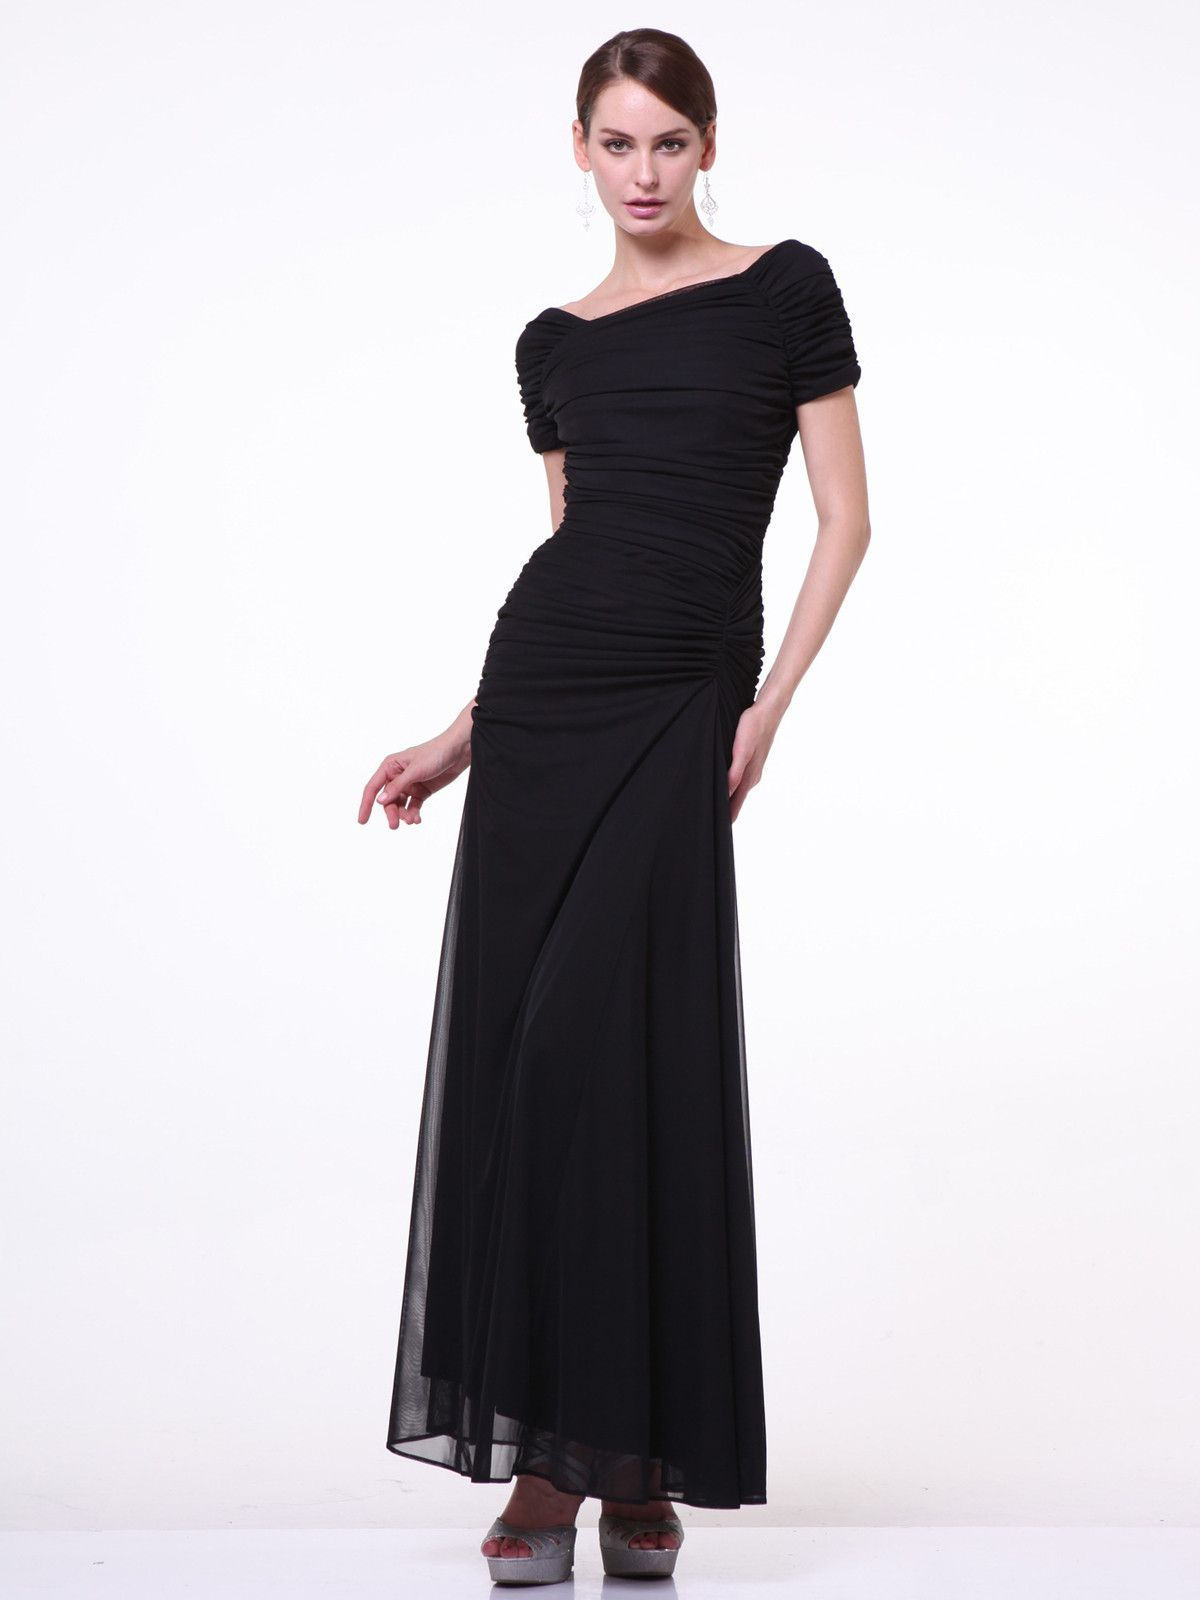 Long sleeve dresses to wear to a wedding  Formal Black Long Dress Mother of the Bride  Short sleeves